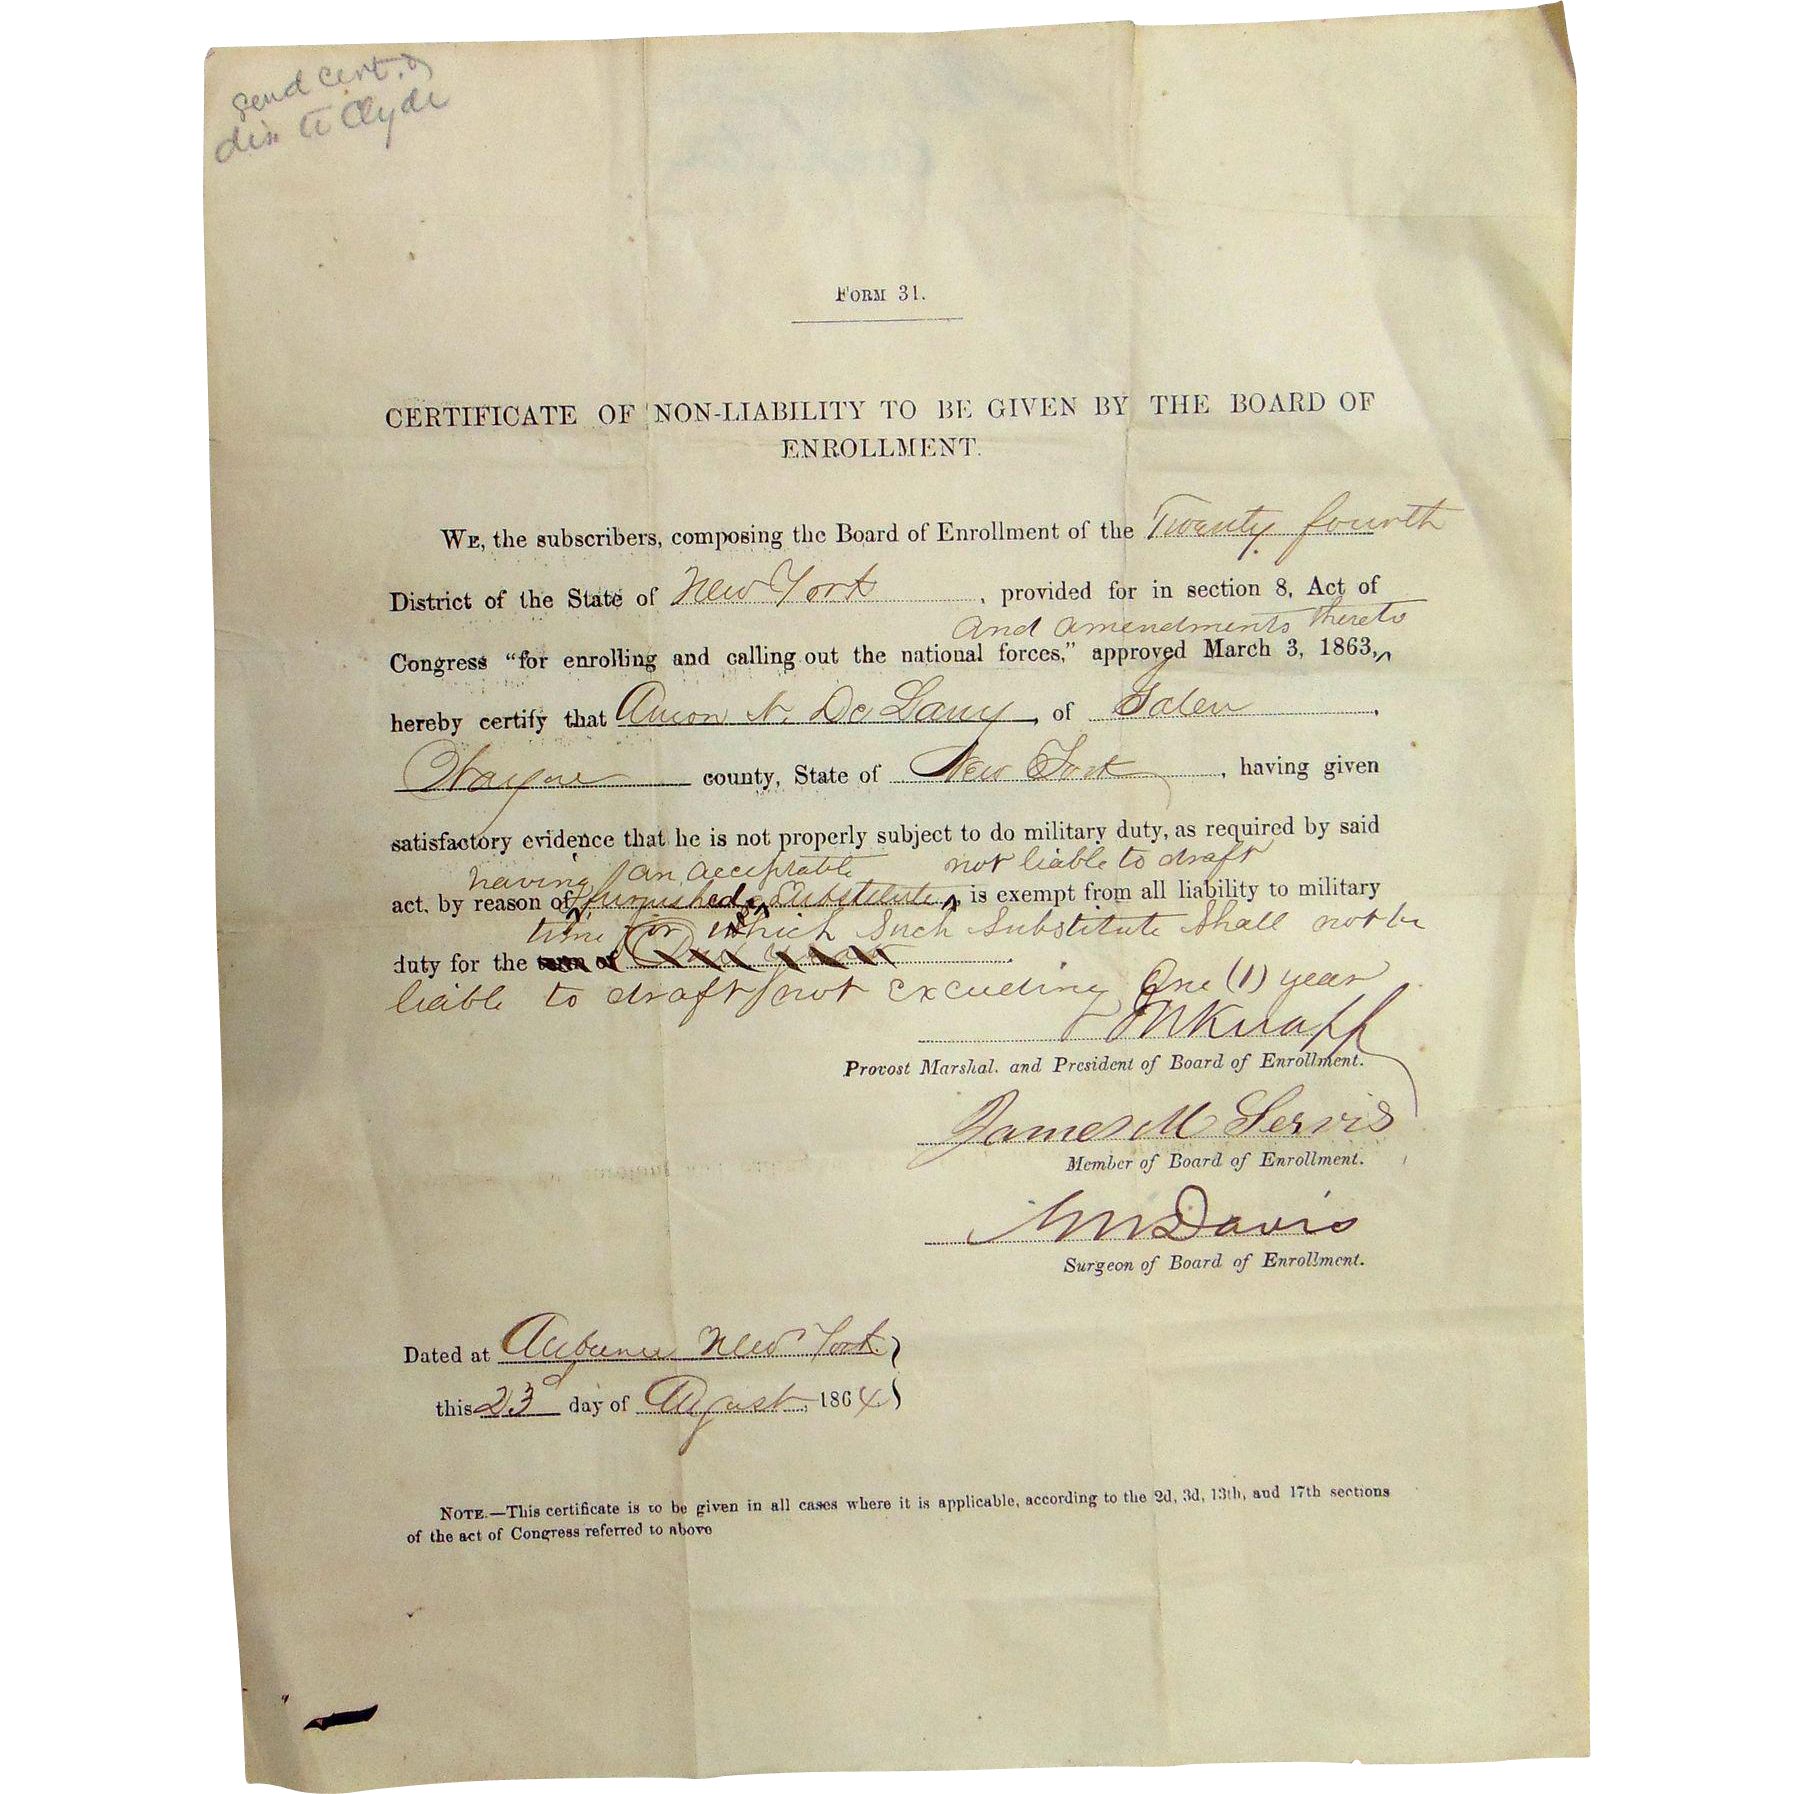 Rare Civil War Certificate of Non-Liability to Serve  Galen,Wayne County New York